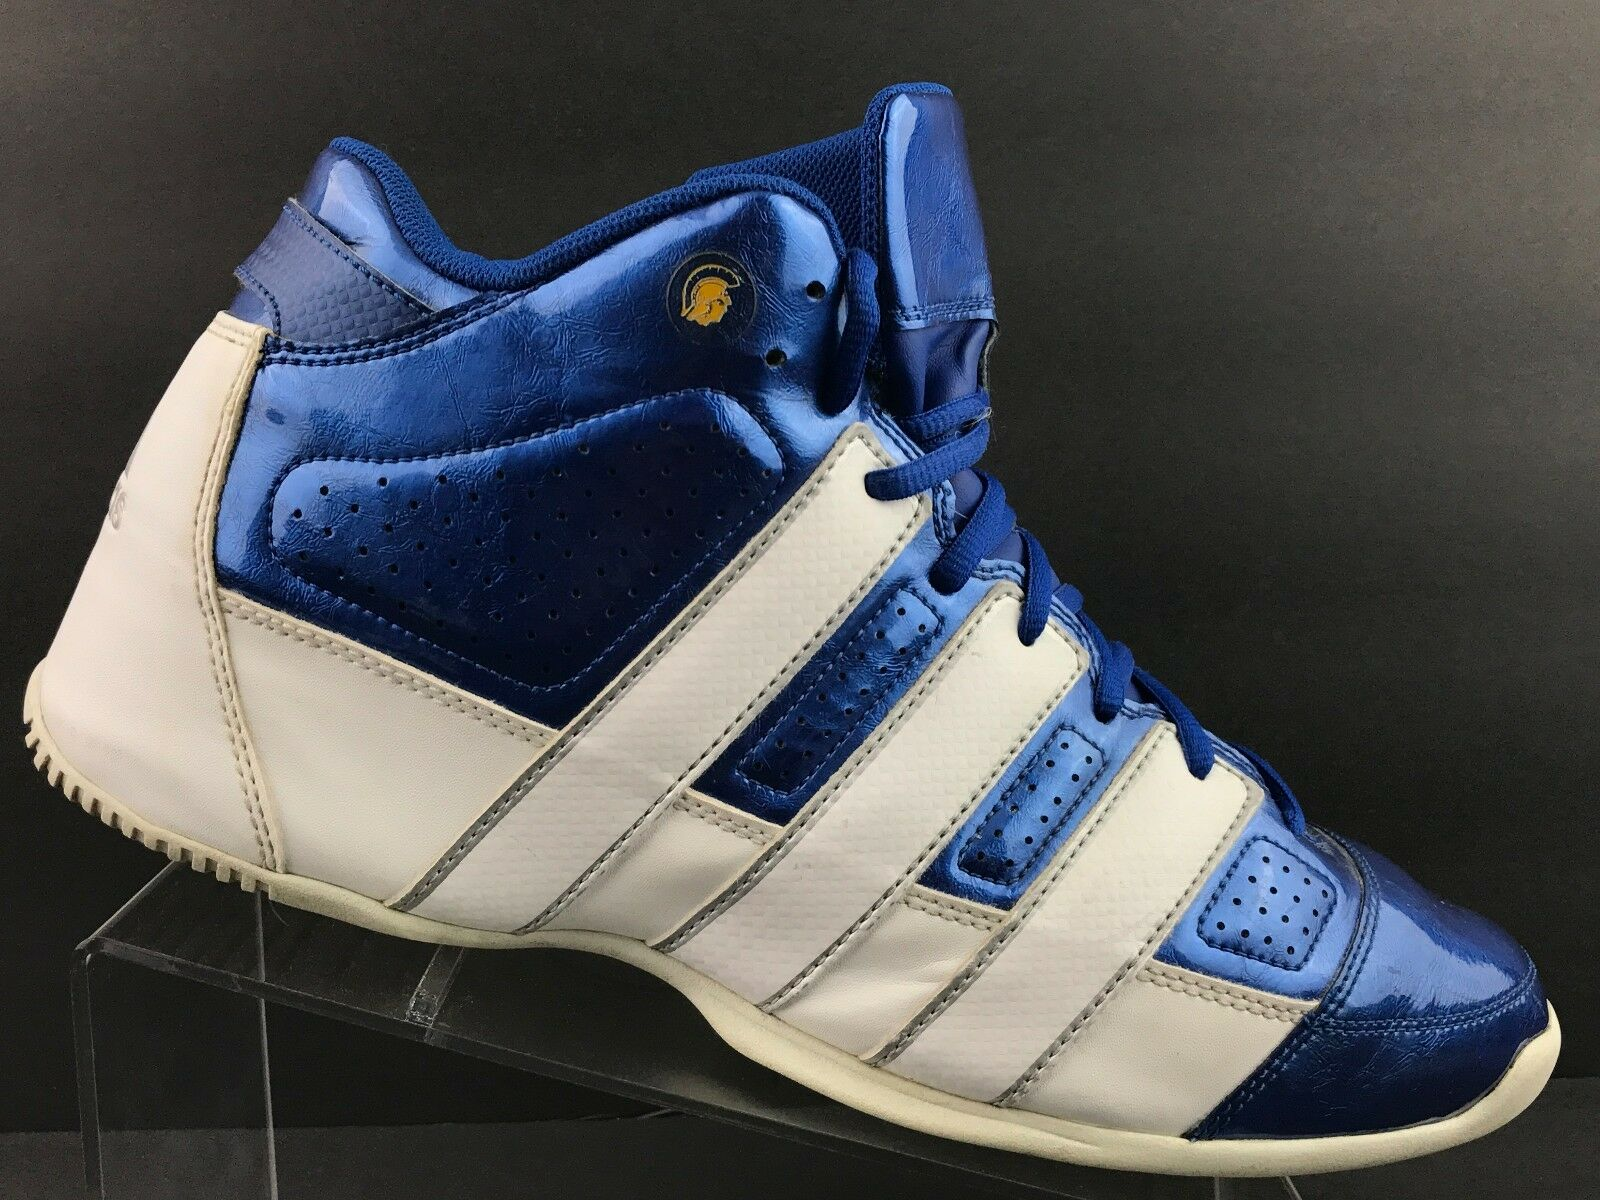 Adidas Sport Sneakers bluee White Running Athletic Basketball Lace Up shoes Sz 12